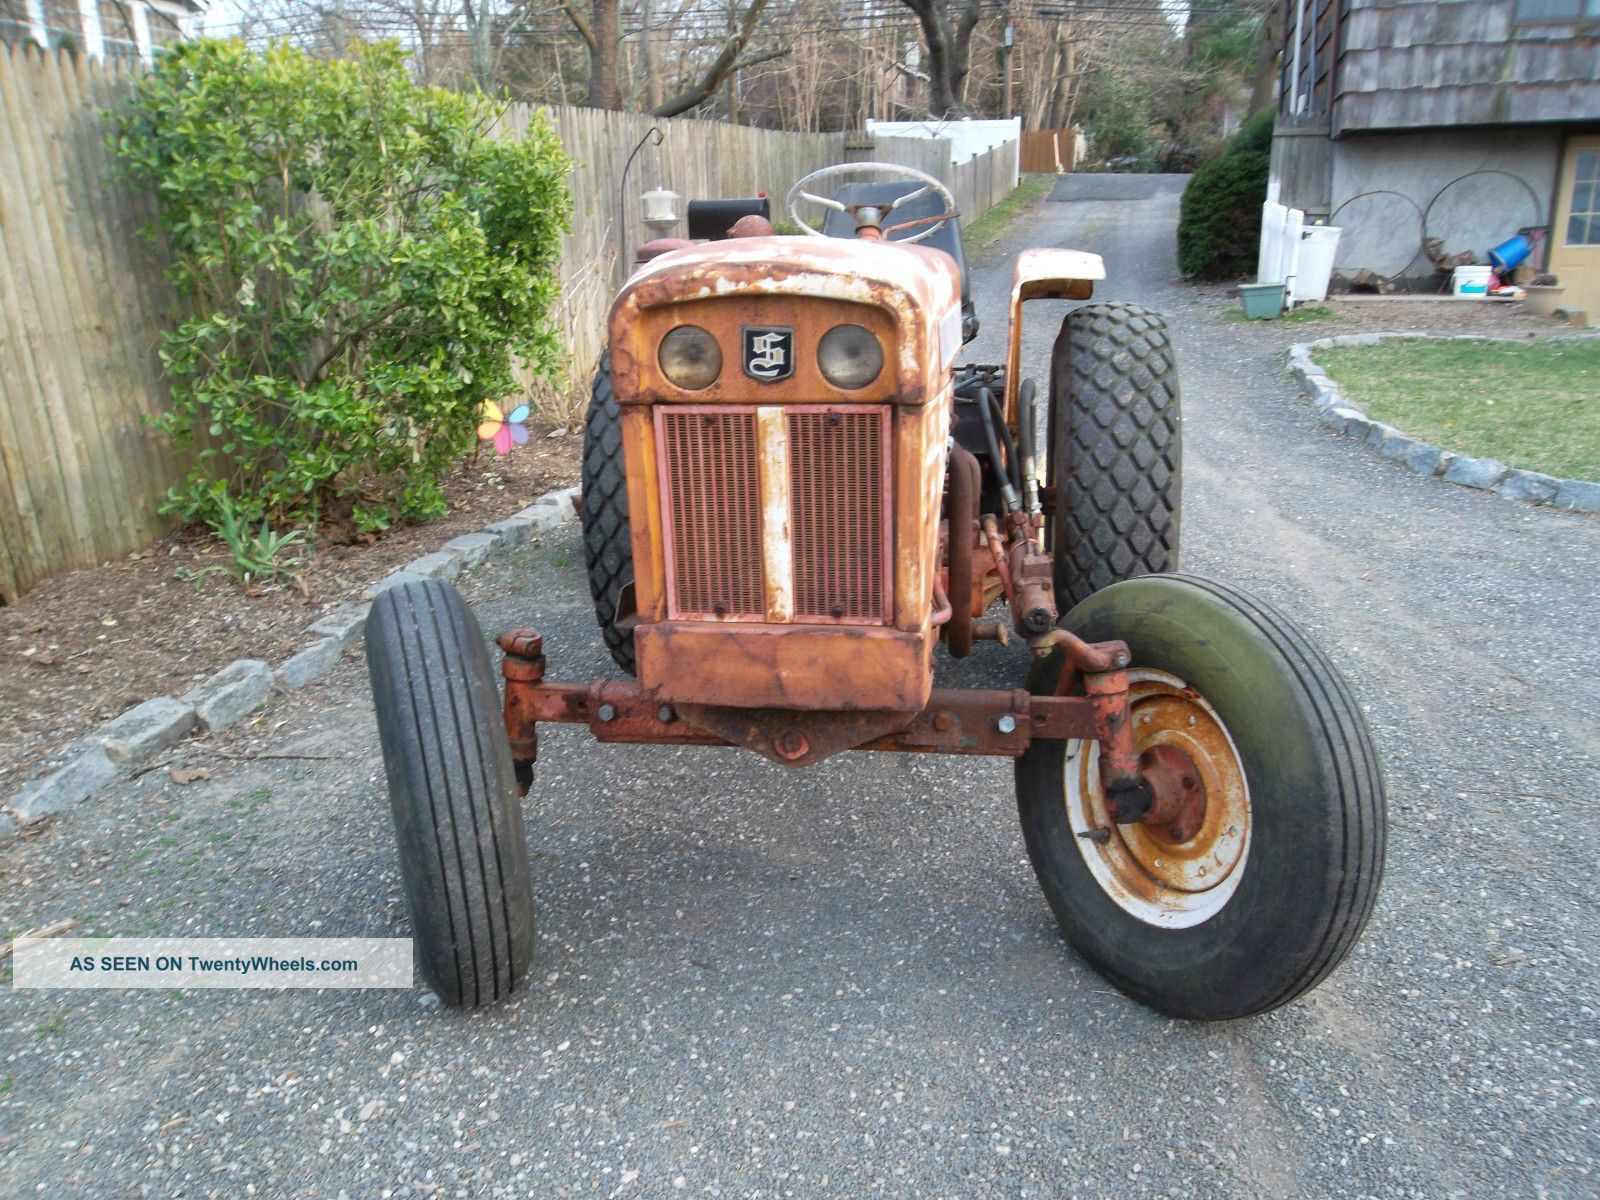 Pin by Chris Boggs on Satoh Tractor | Tractors, Antique cars, Vehicles